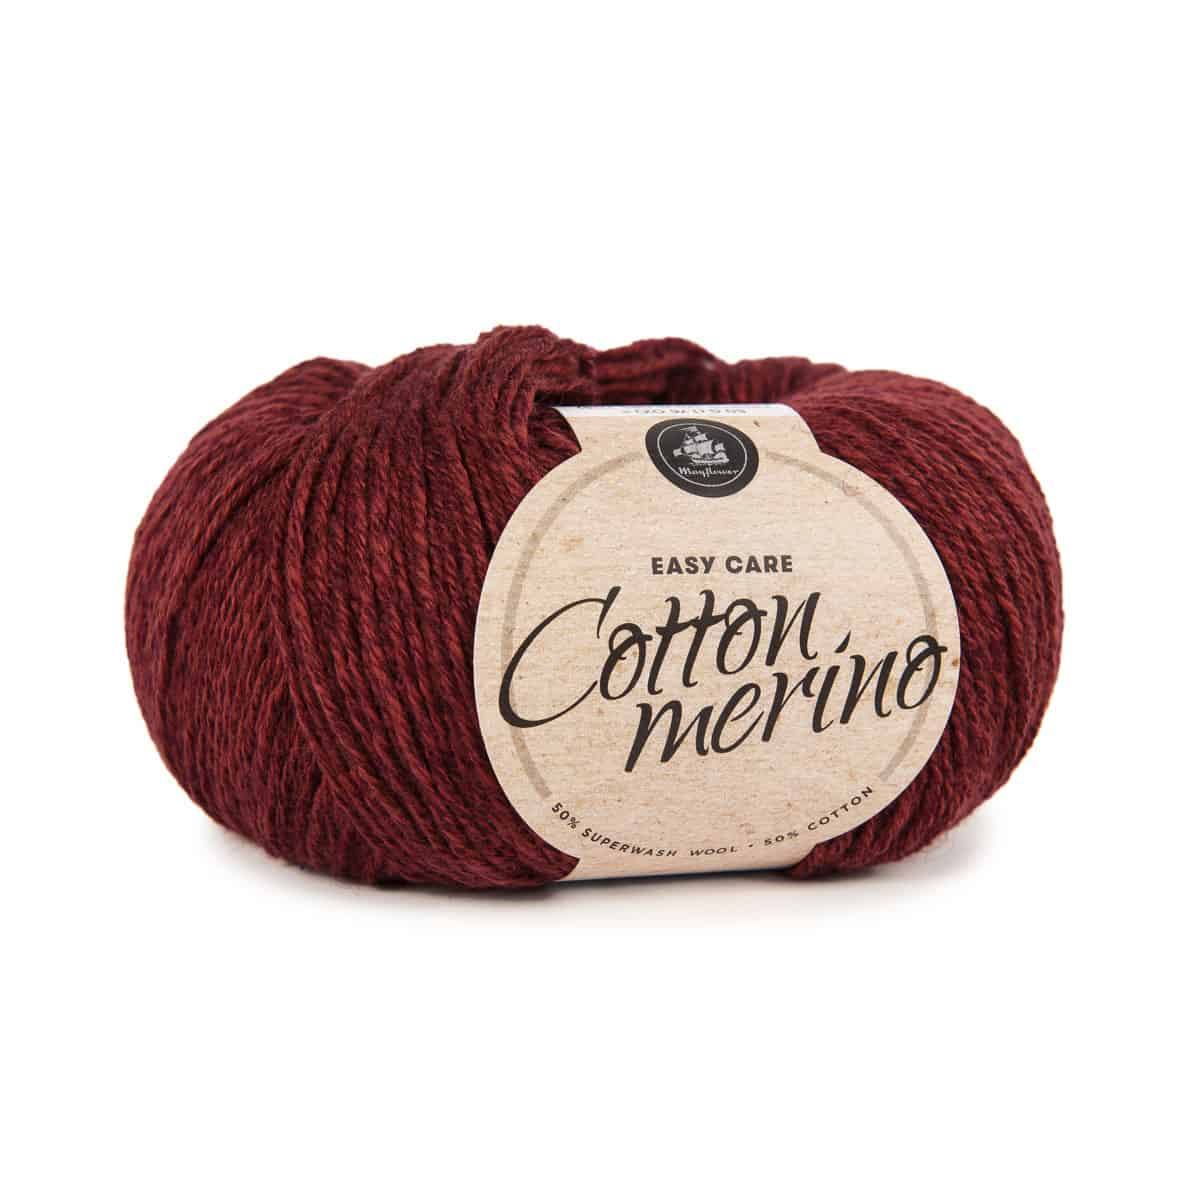 Image of Mayflower Cotton Merino (S08) Rhododendron